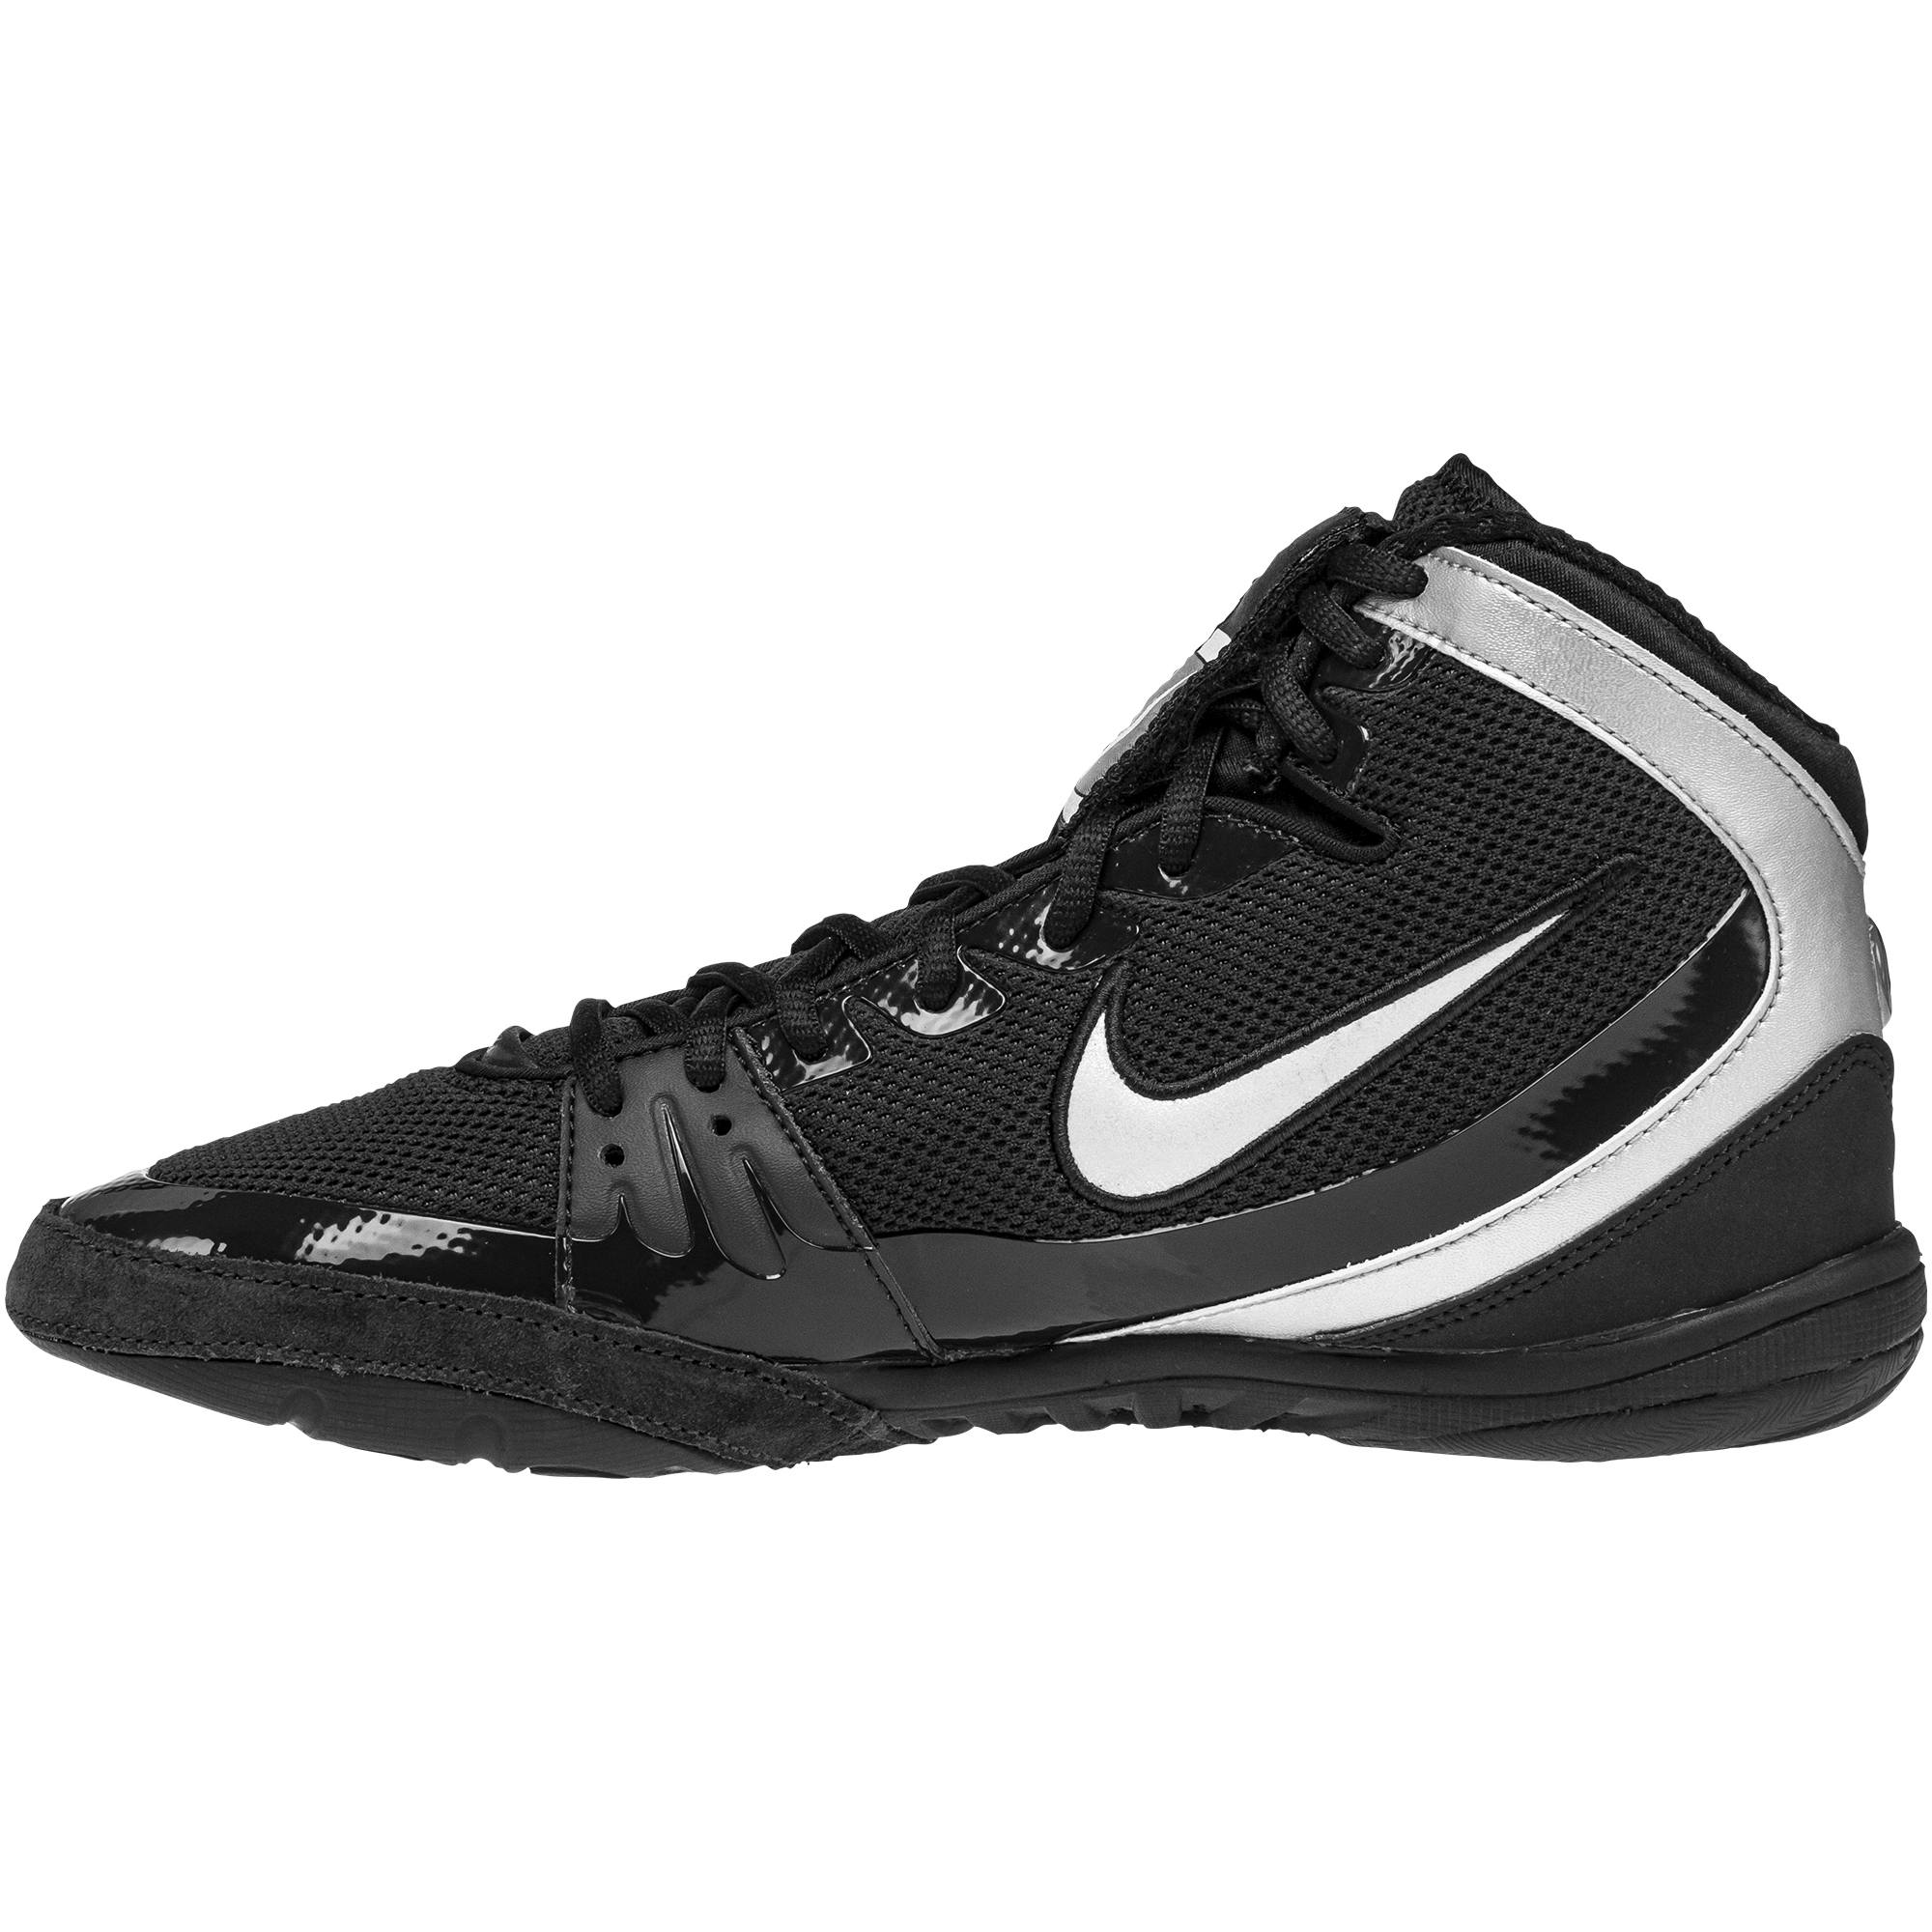 super popular 25200 51f5f ... Freek Black Silver backNike Freek Black Silver frontNike Freek Black  Silver sole